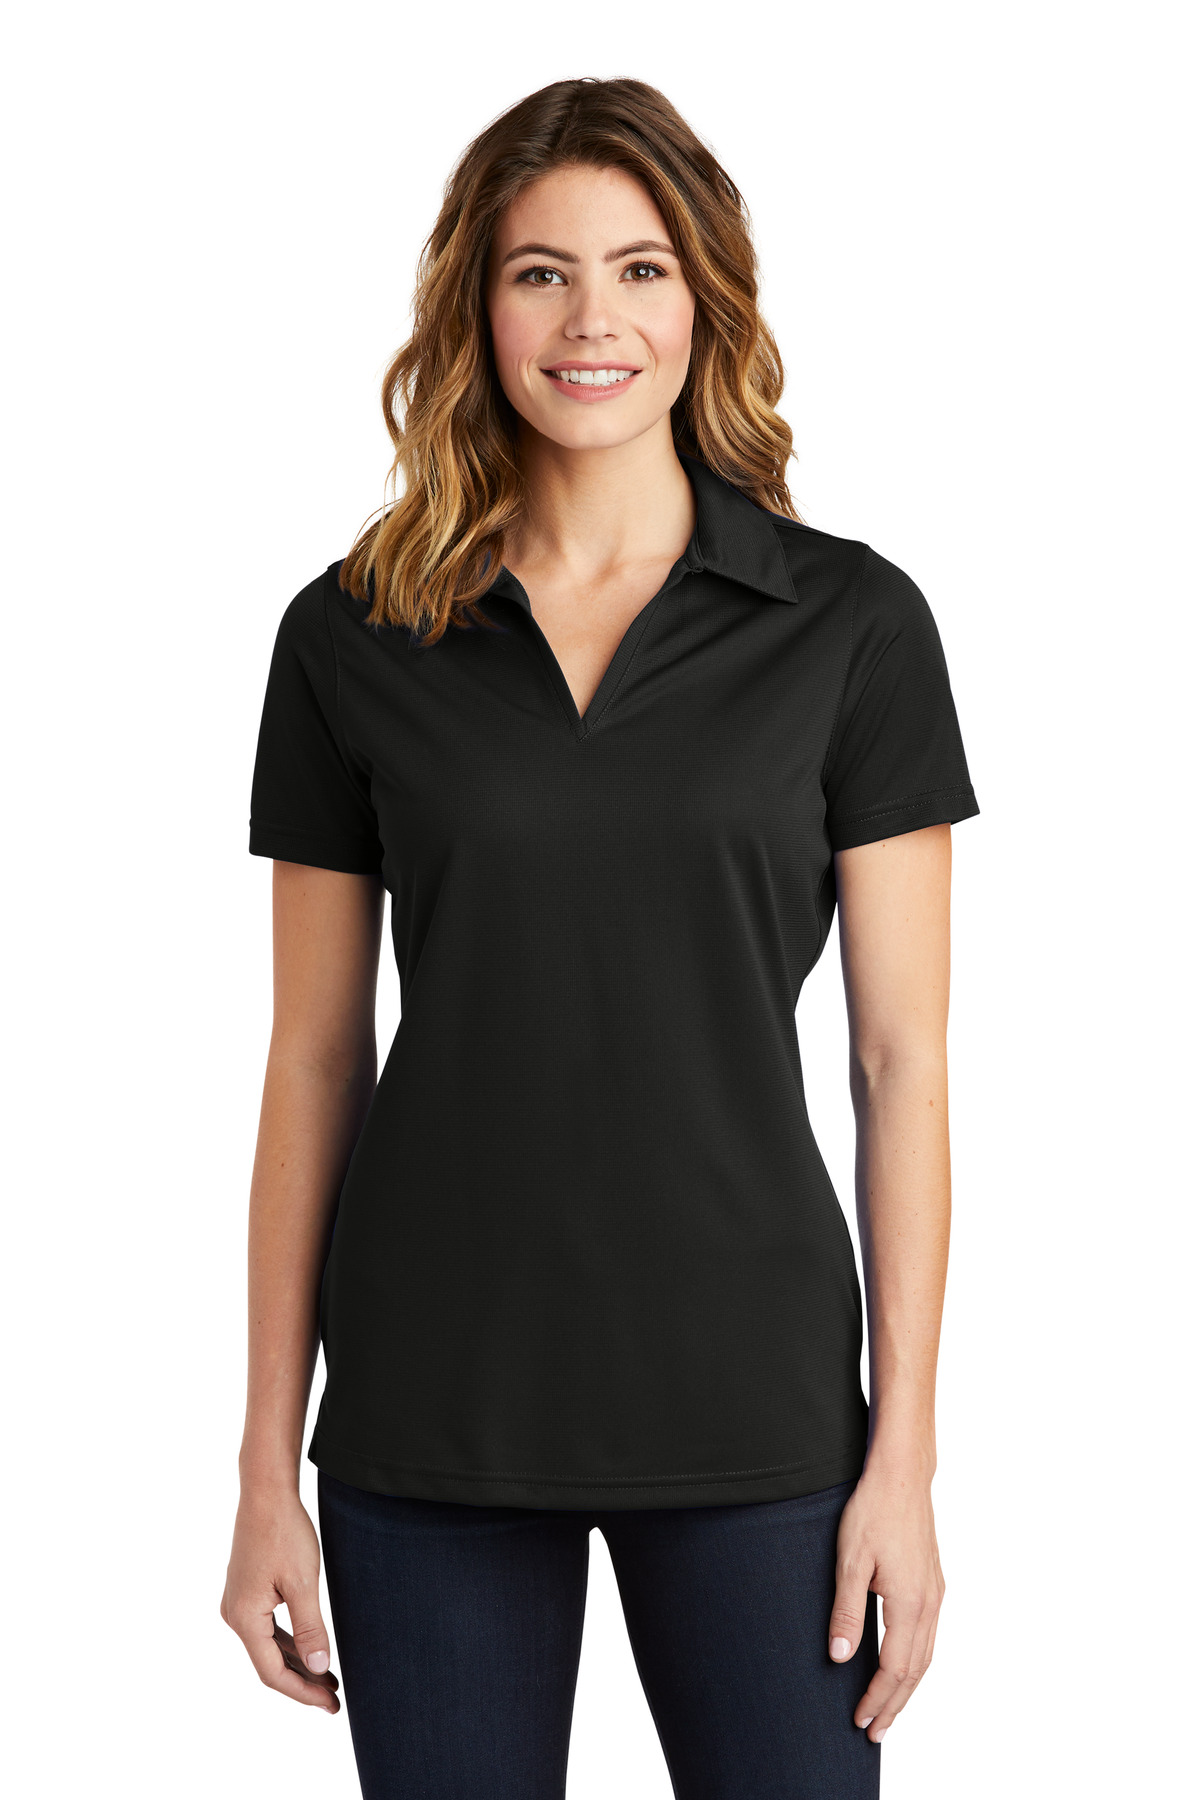 Sport-Tek ®  Ladies PosiCharge ®  Active Textured Polo. LST690 - Black